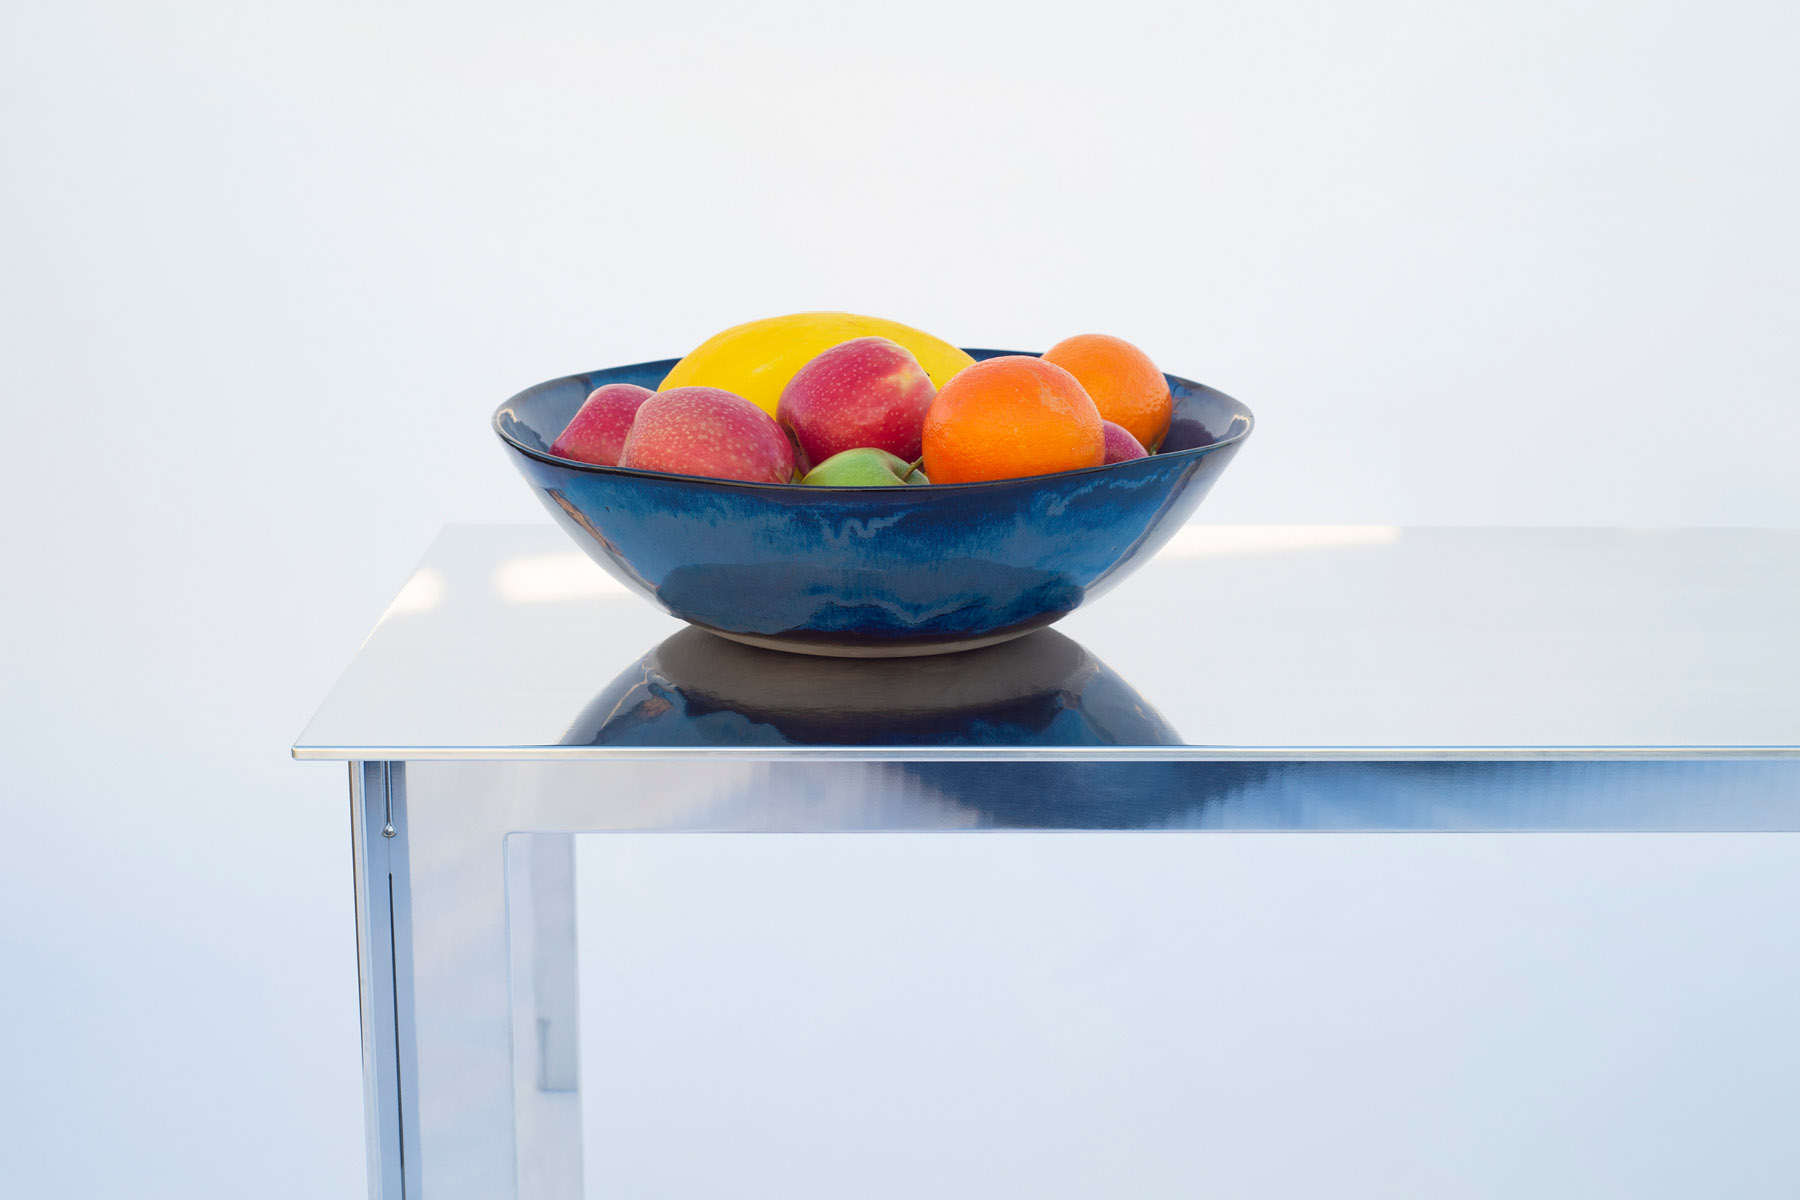 Table basse en aluminium avec bol de fruits